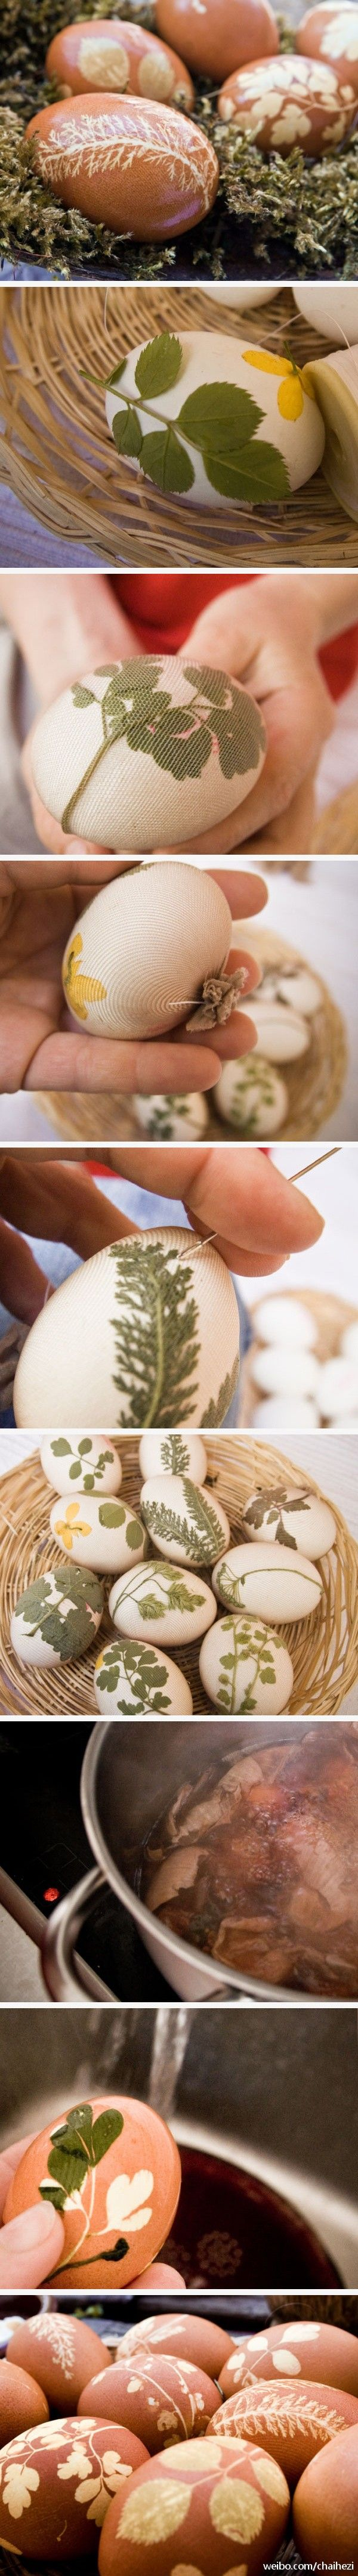 paint and pattern eggs naturally